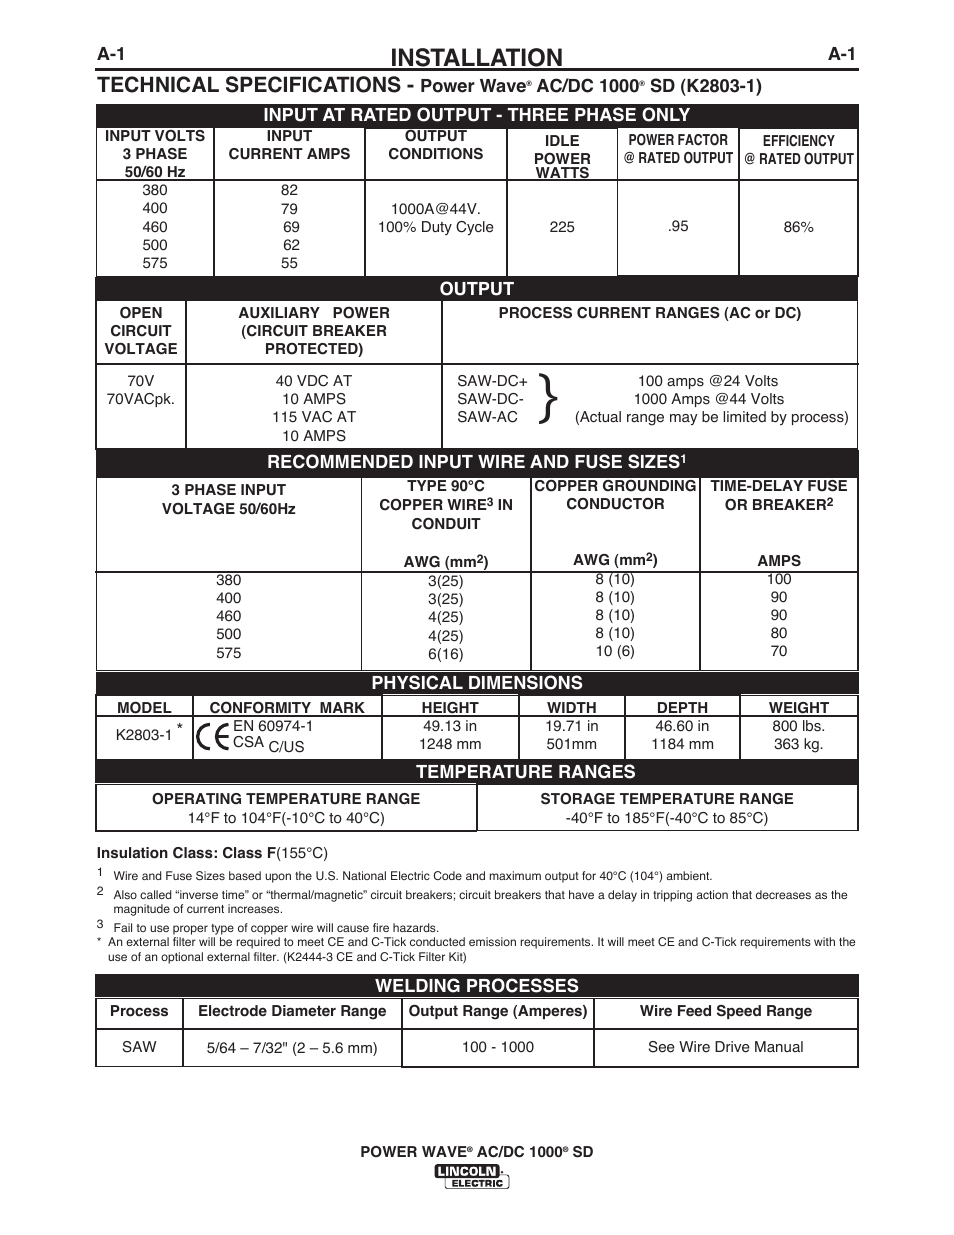 Installation, Technical specifications | Lincoln Electric IM10022 ...